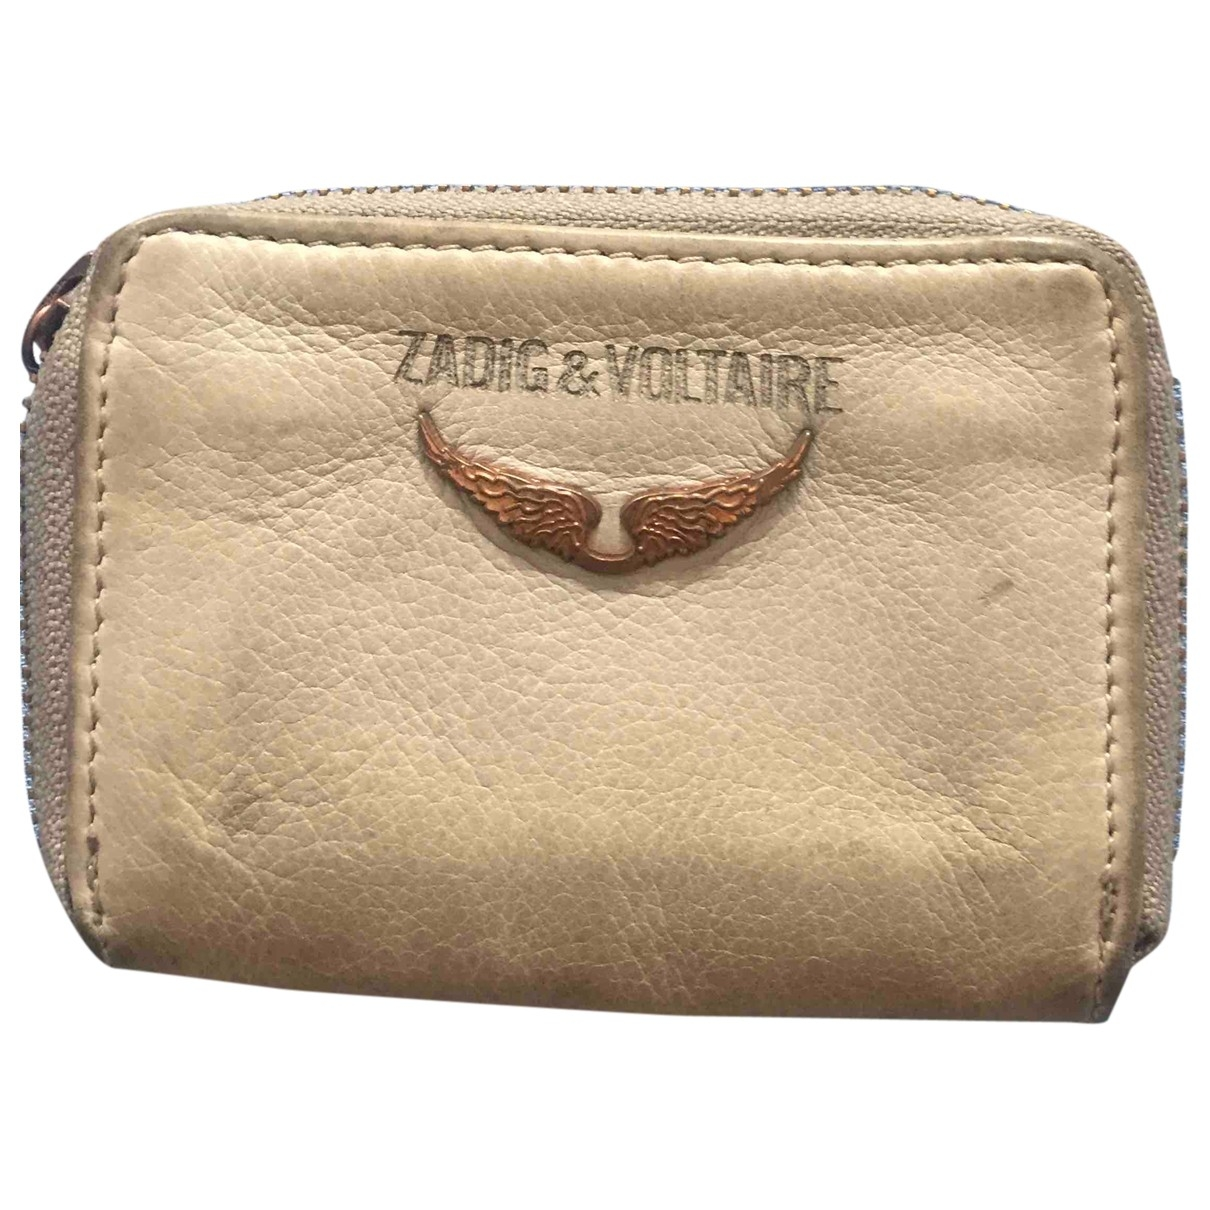 Zadig & Voltaire \N Beige Leather Purses, wallet & cases for Women \N